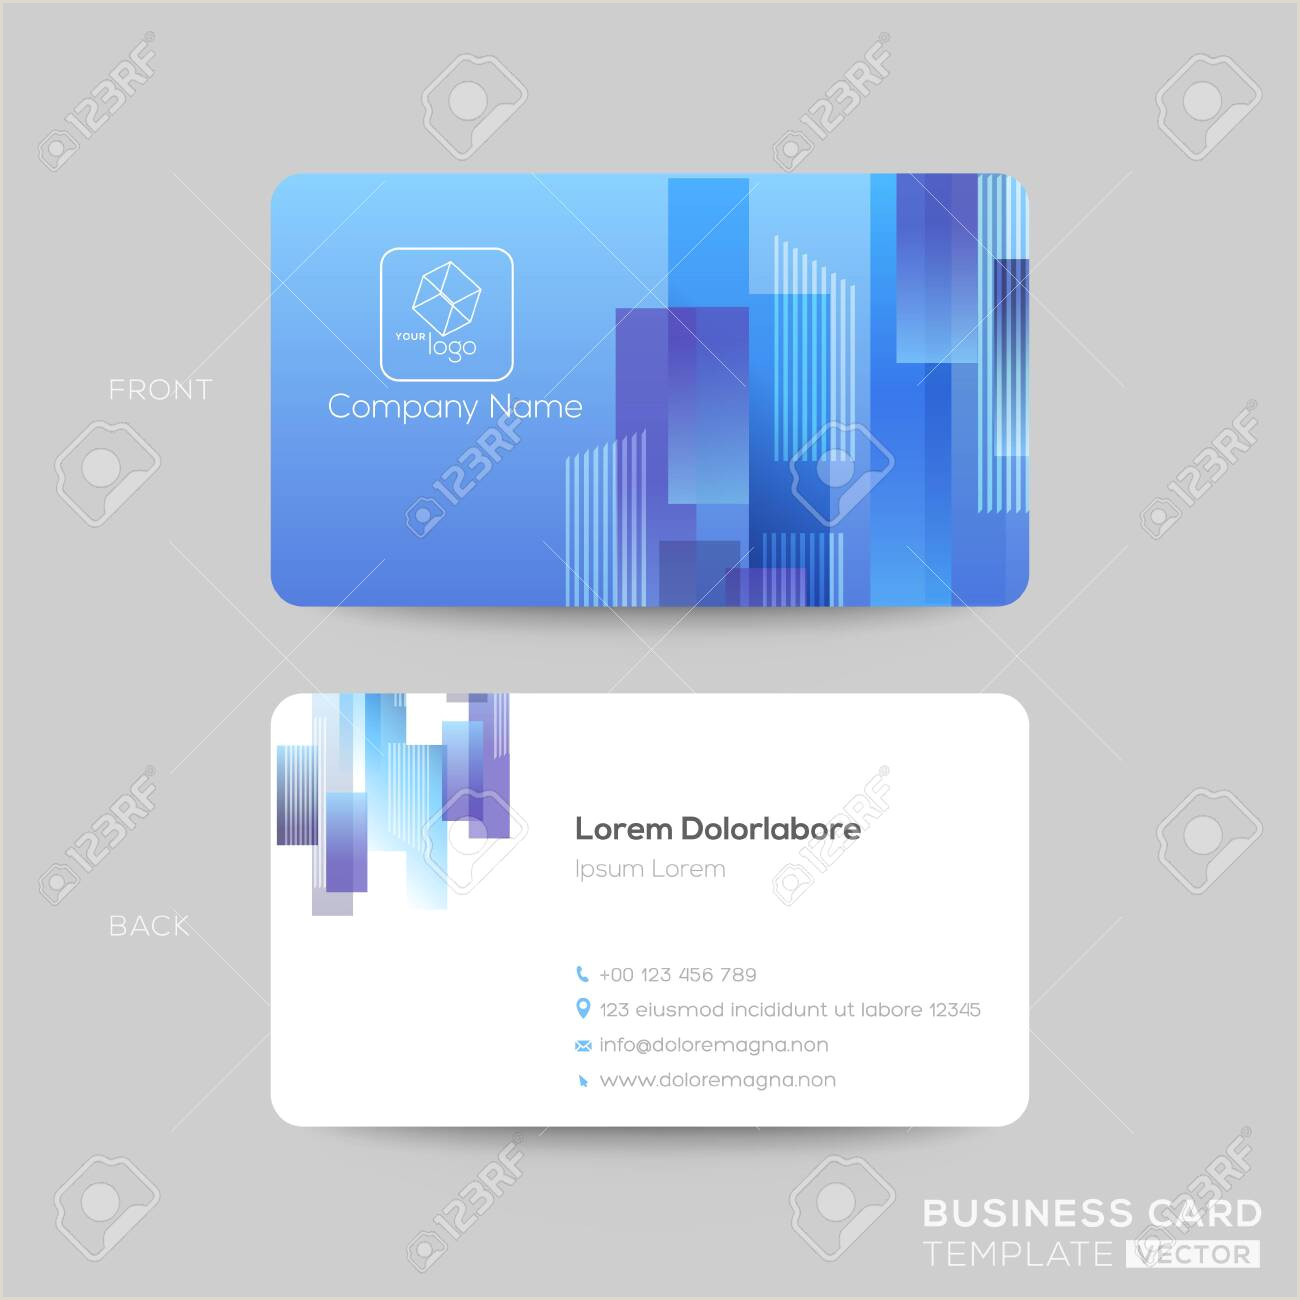 Glow In The Dark Business Cards Vector Blue Business Card Background Free Premium Vector